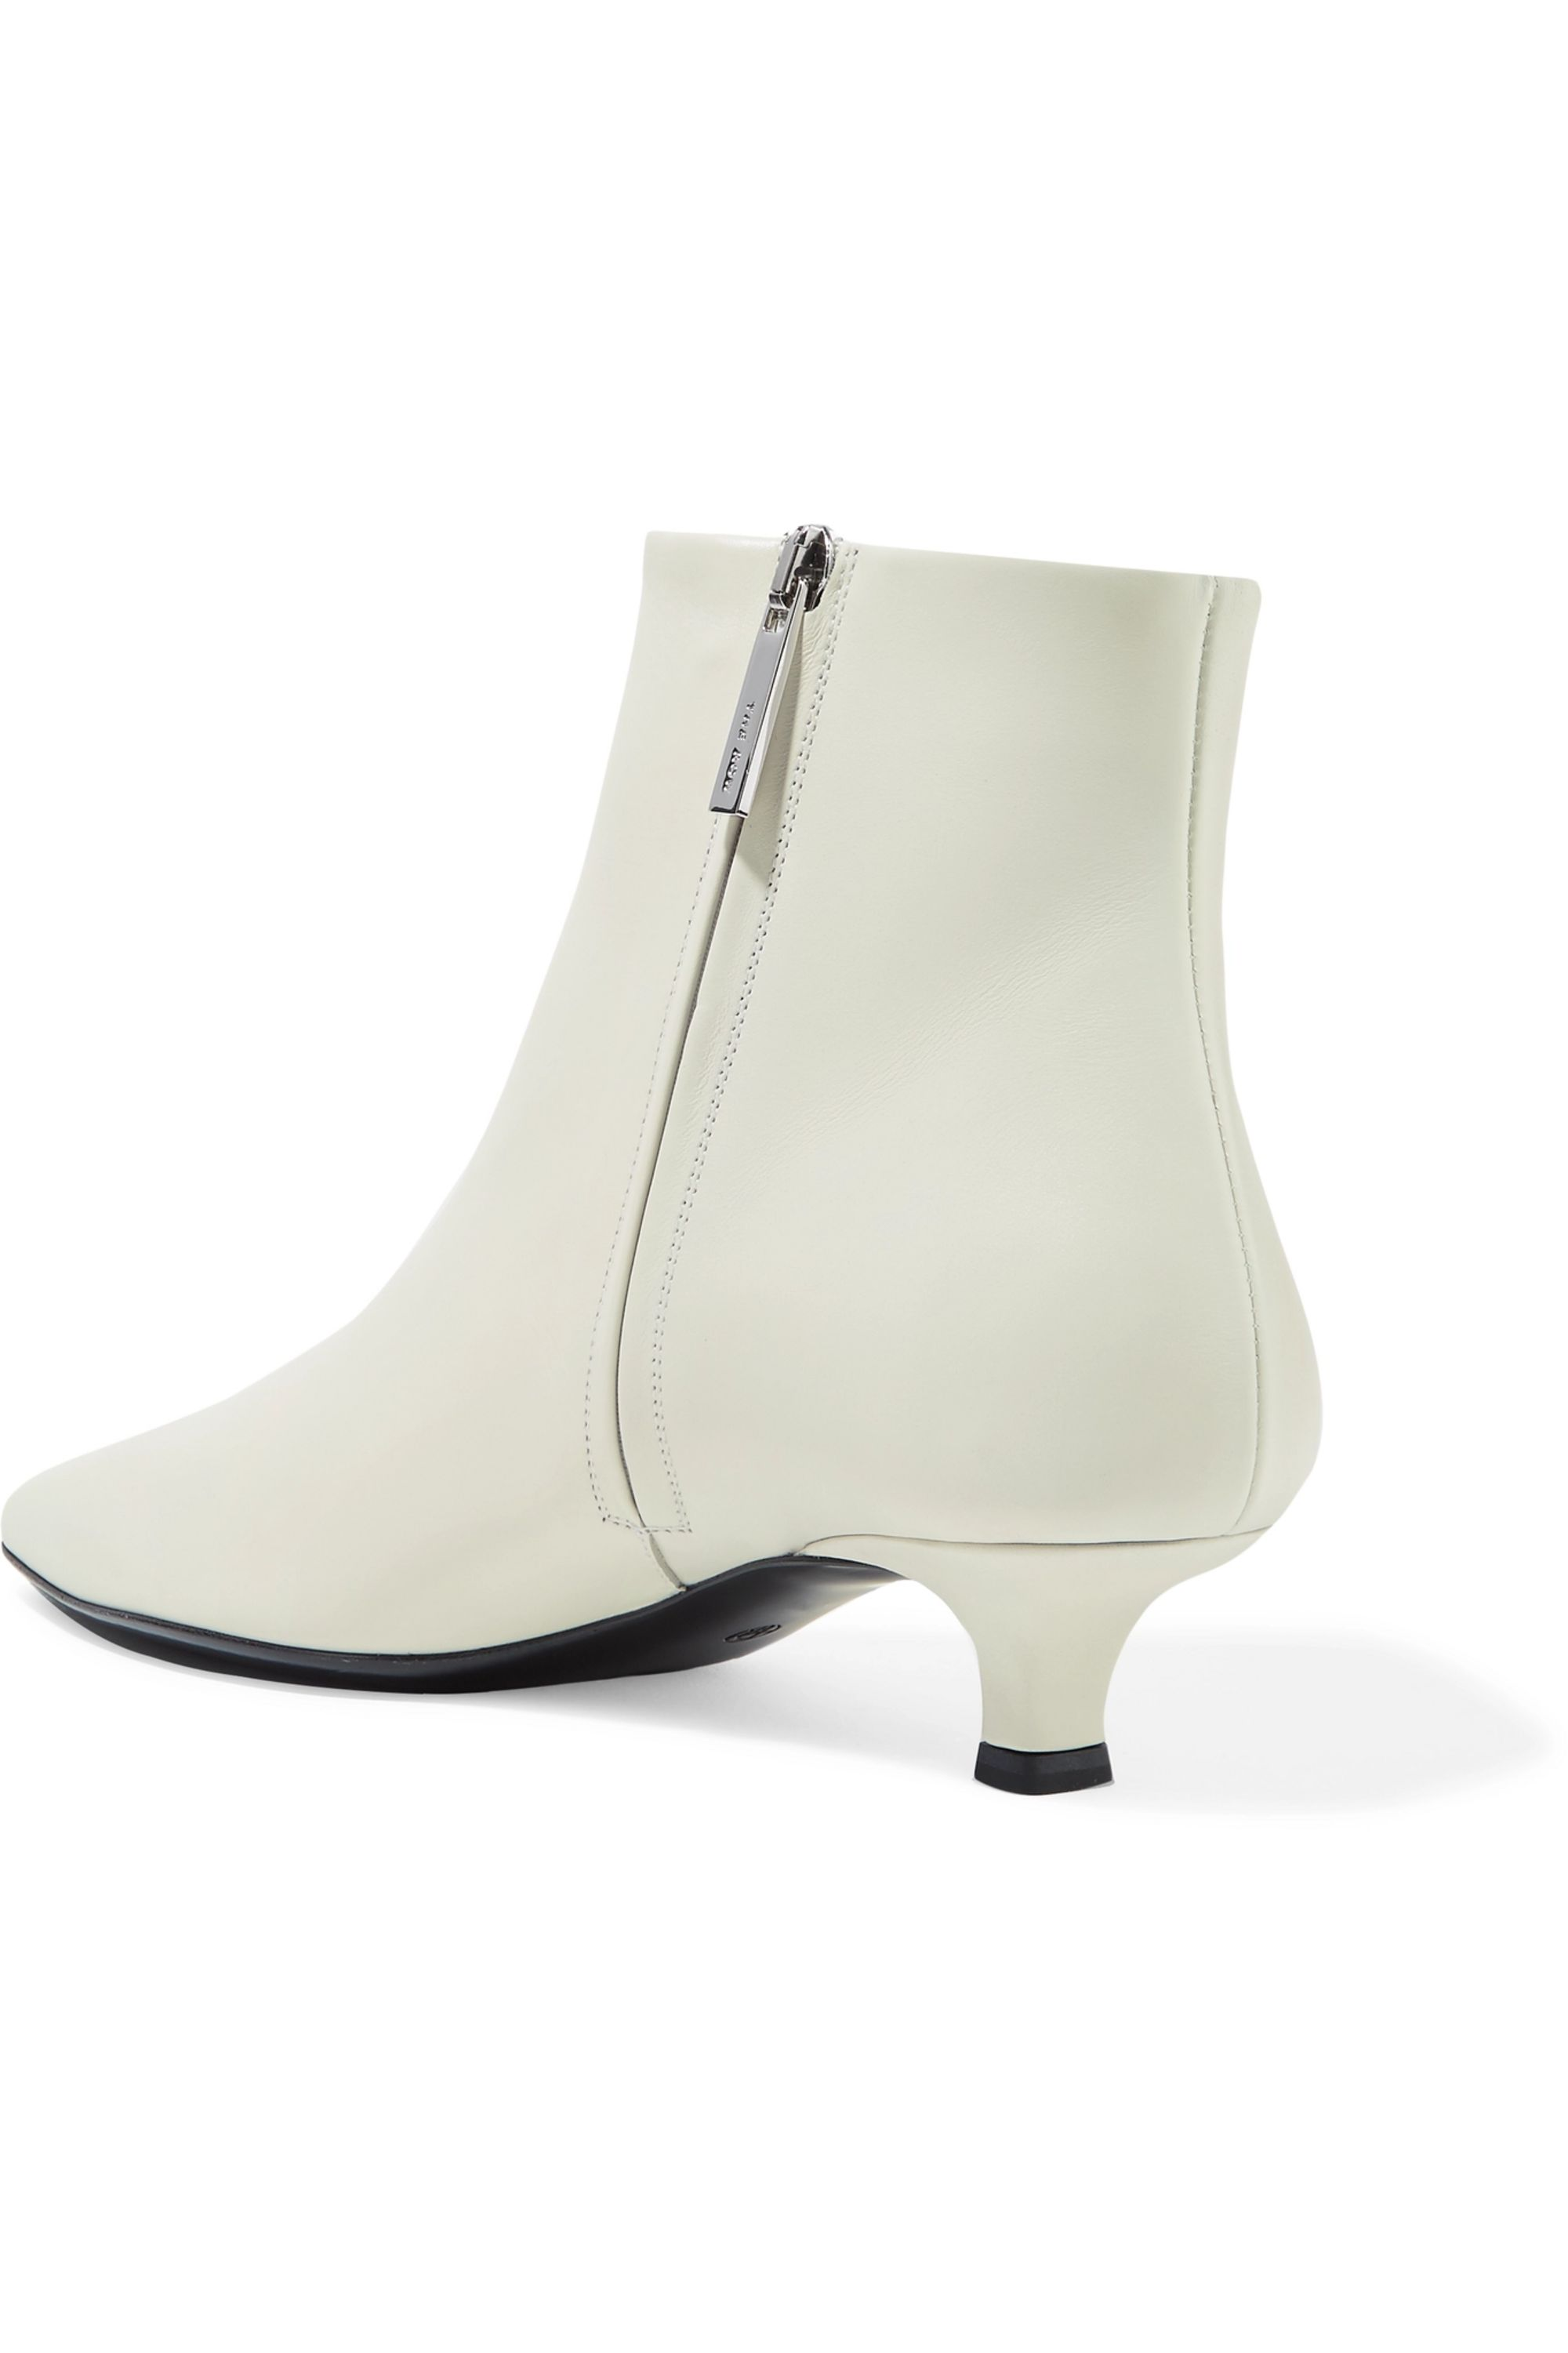 The Row Coco leather ankle boots